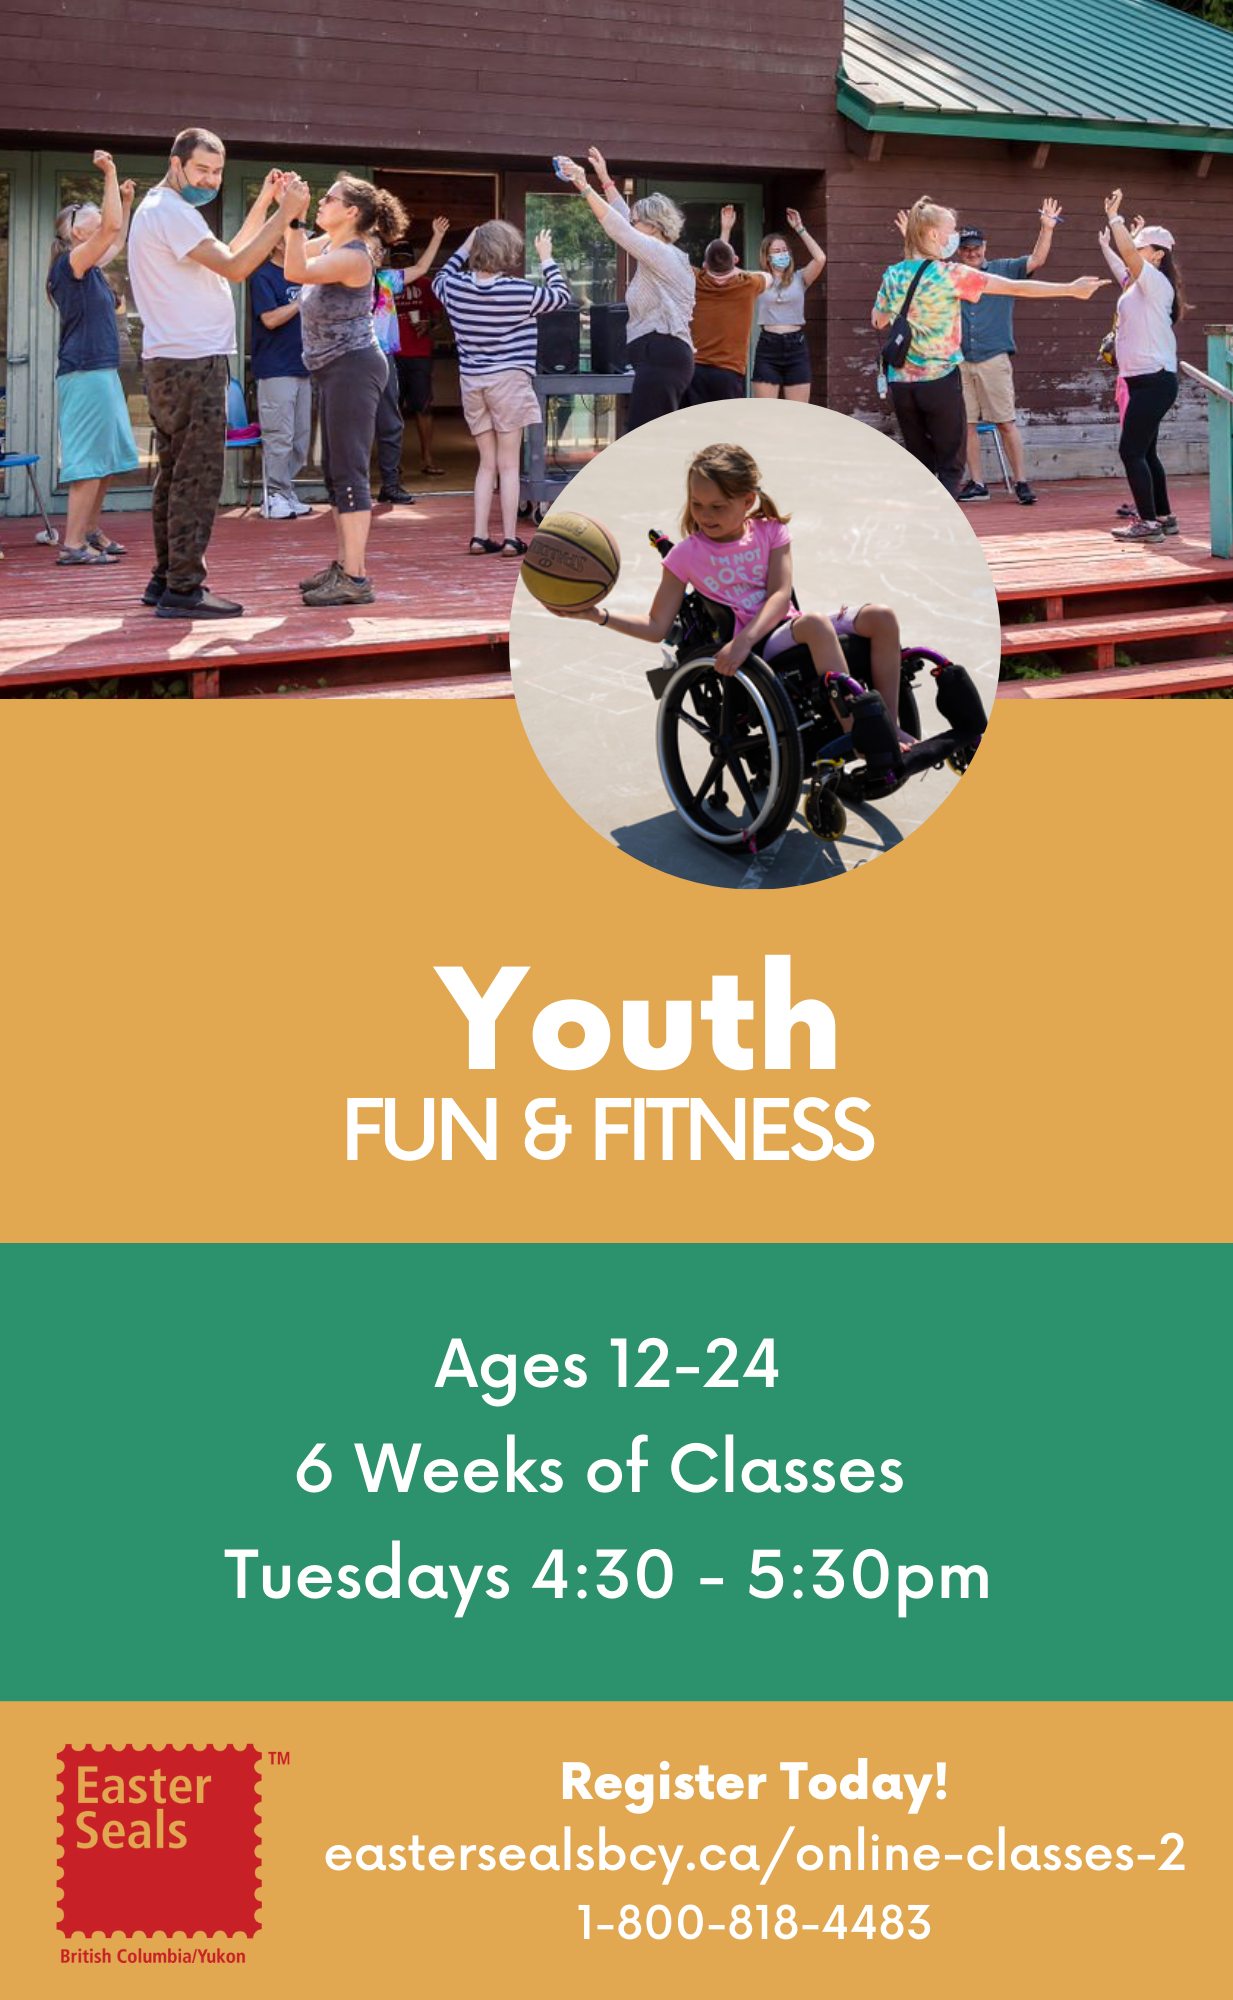 Youth Fun and Fitness for Ages 12-24